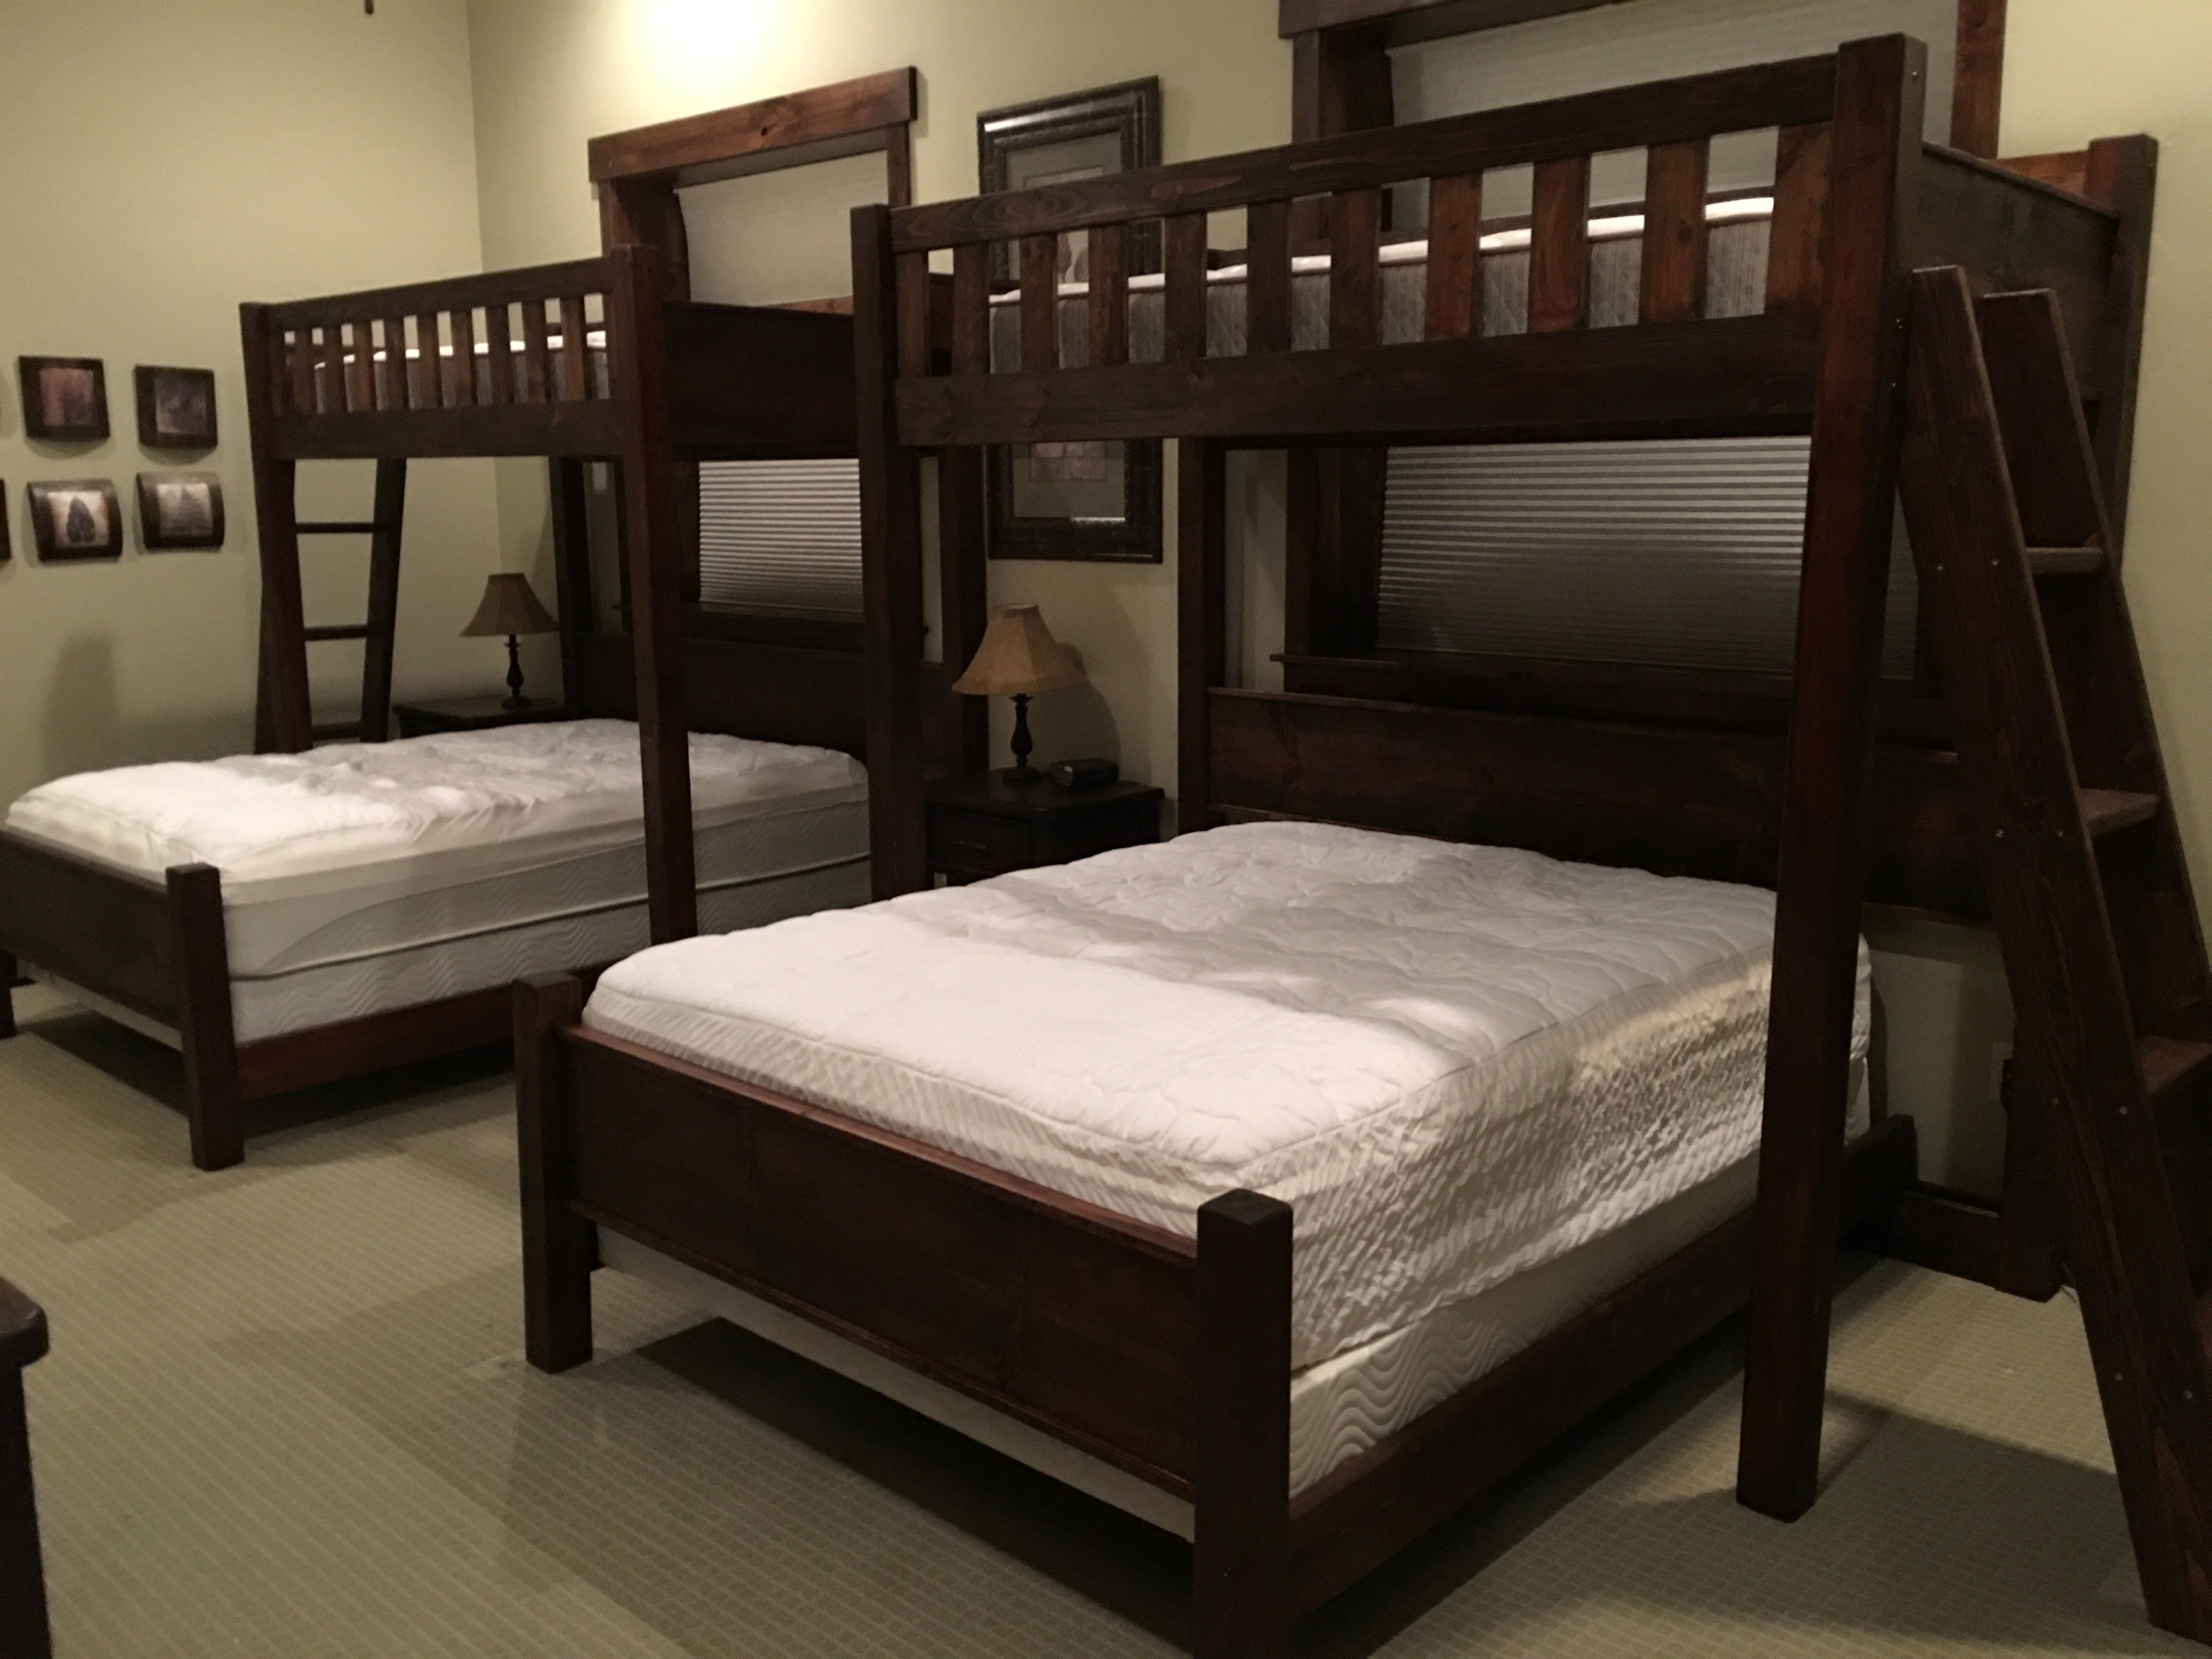 Best Custom Bunk Beds Texas Bunk Bed Twin Over Queen Rustic 400 x 300